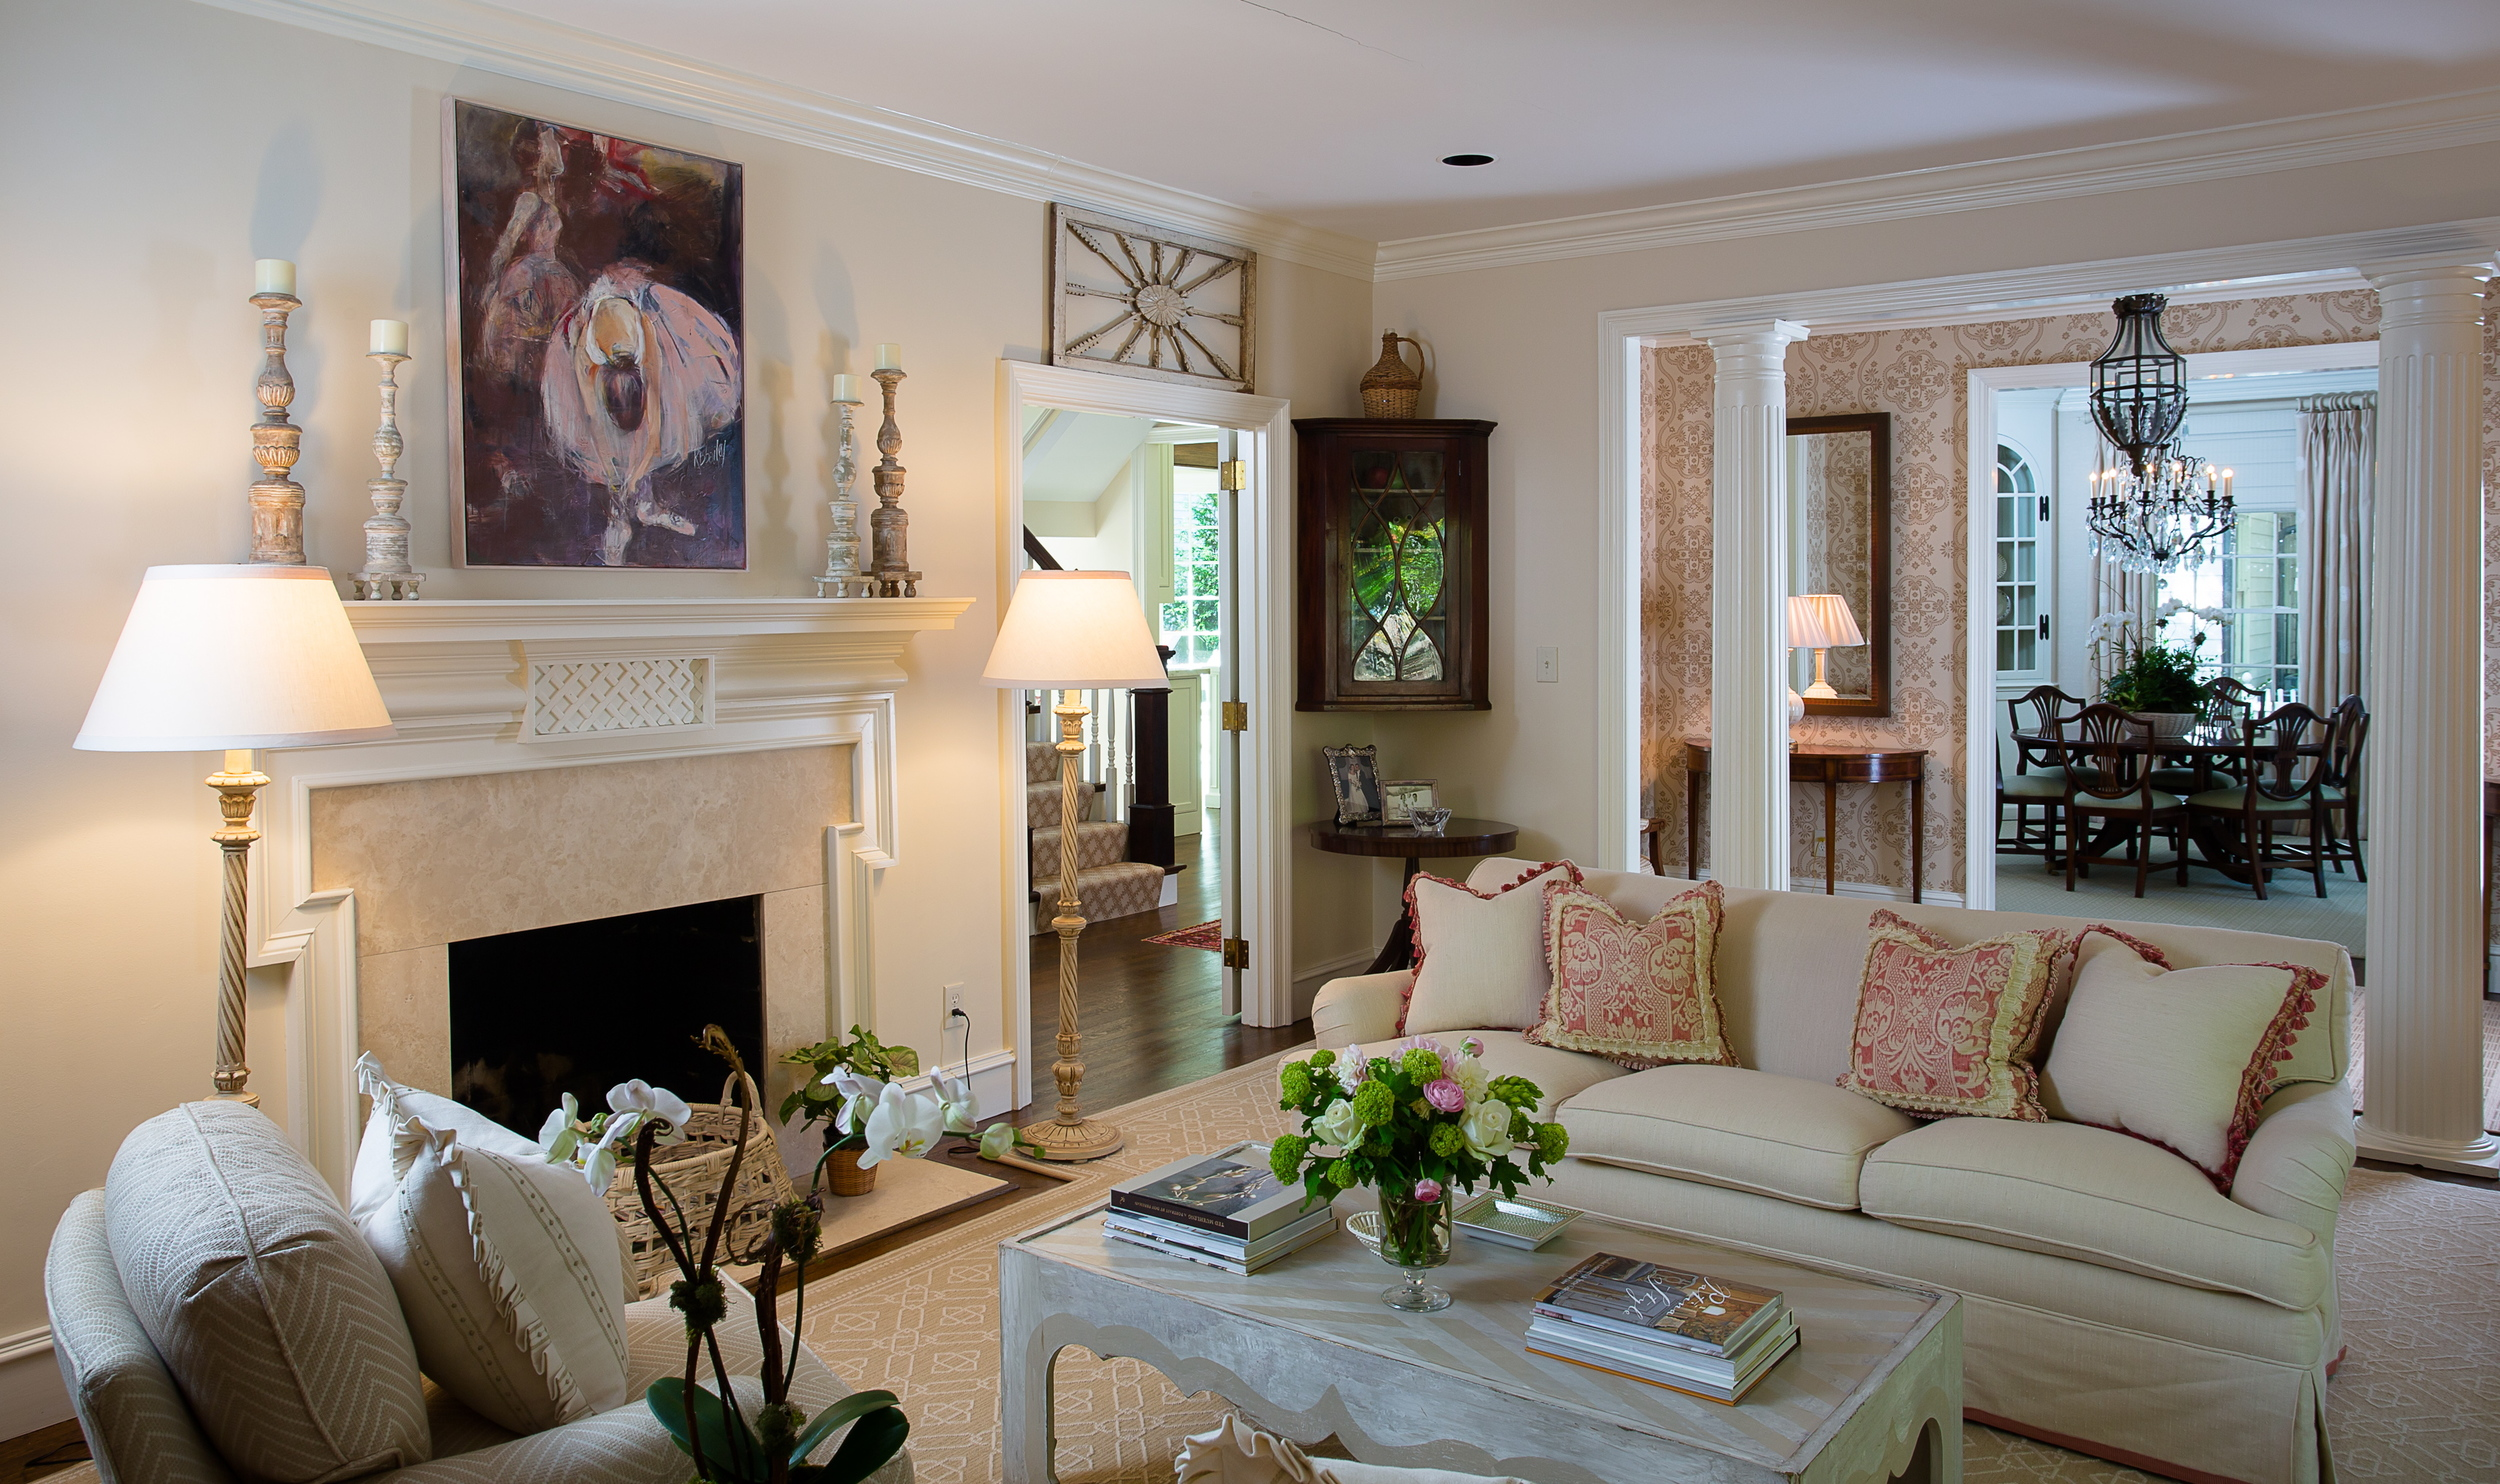 GWP_KELLETTINTERIORS_10222012-0025.jpg